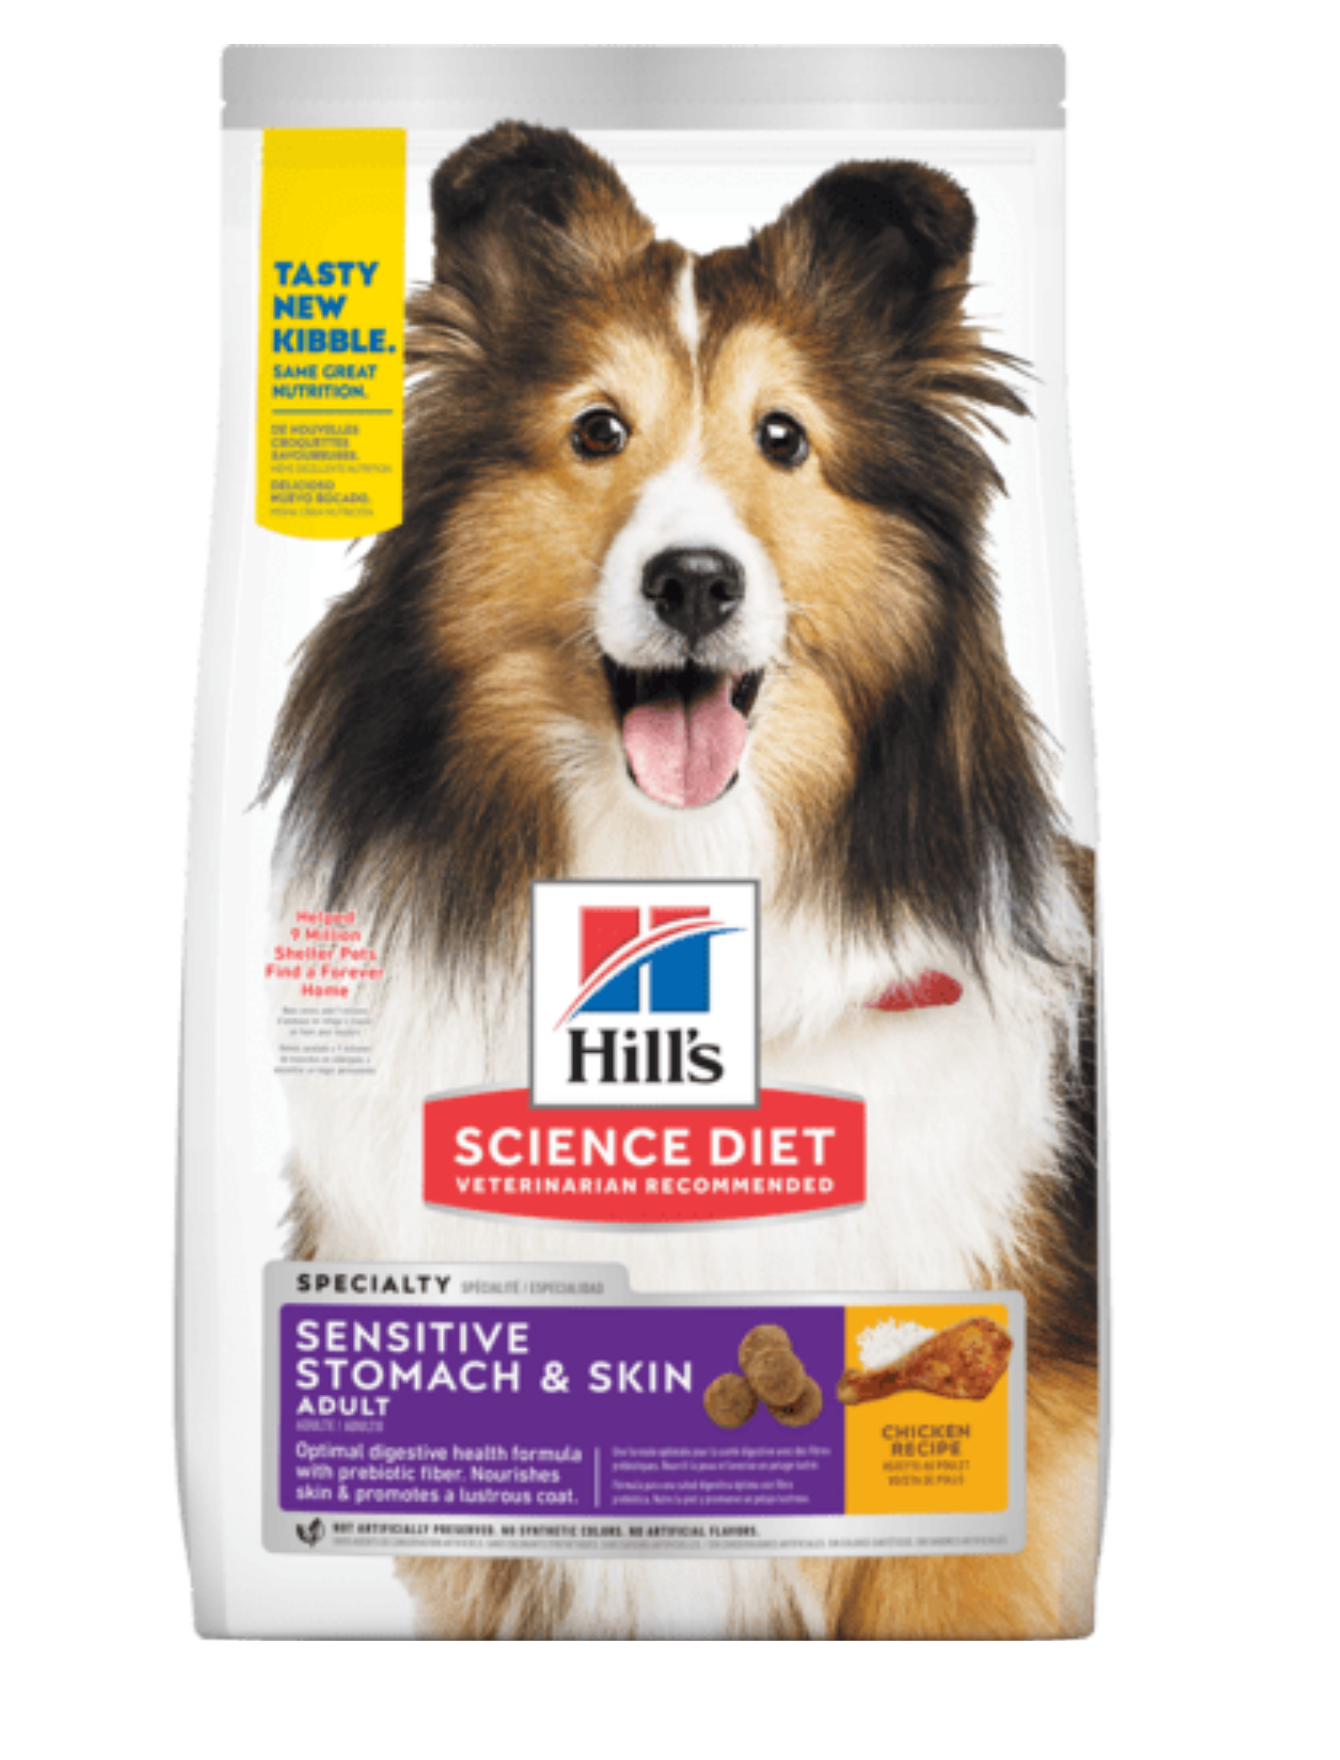 Hill's Science Diet Sensitive Stomach & Skin Adult Dry Dog Food (2 Sizes)